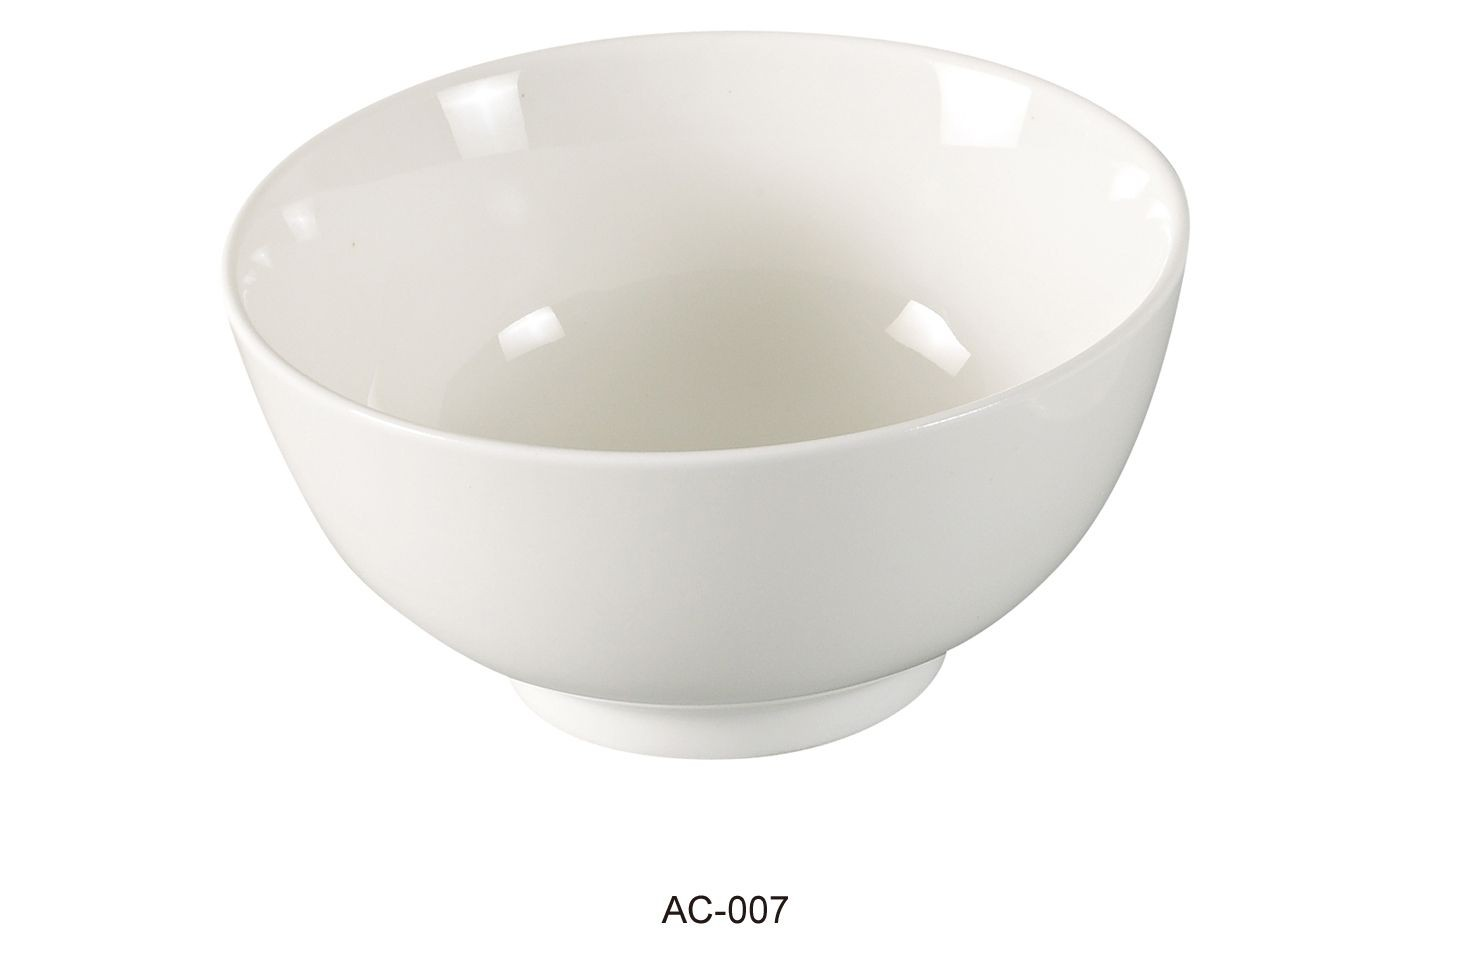 "Yanco ac-007 Abco 4 1/2"" Rice Bowl 8.5 oz."